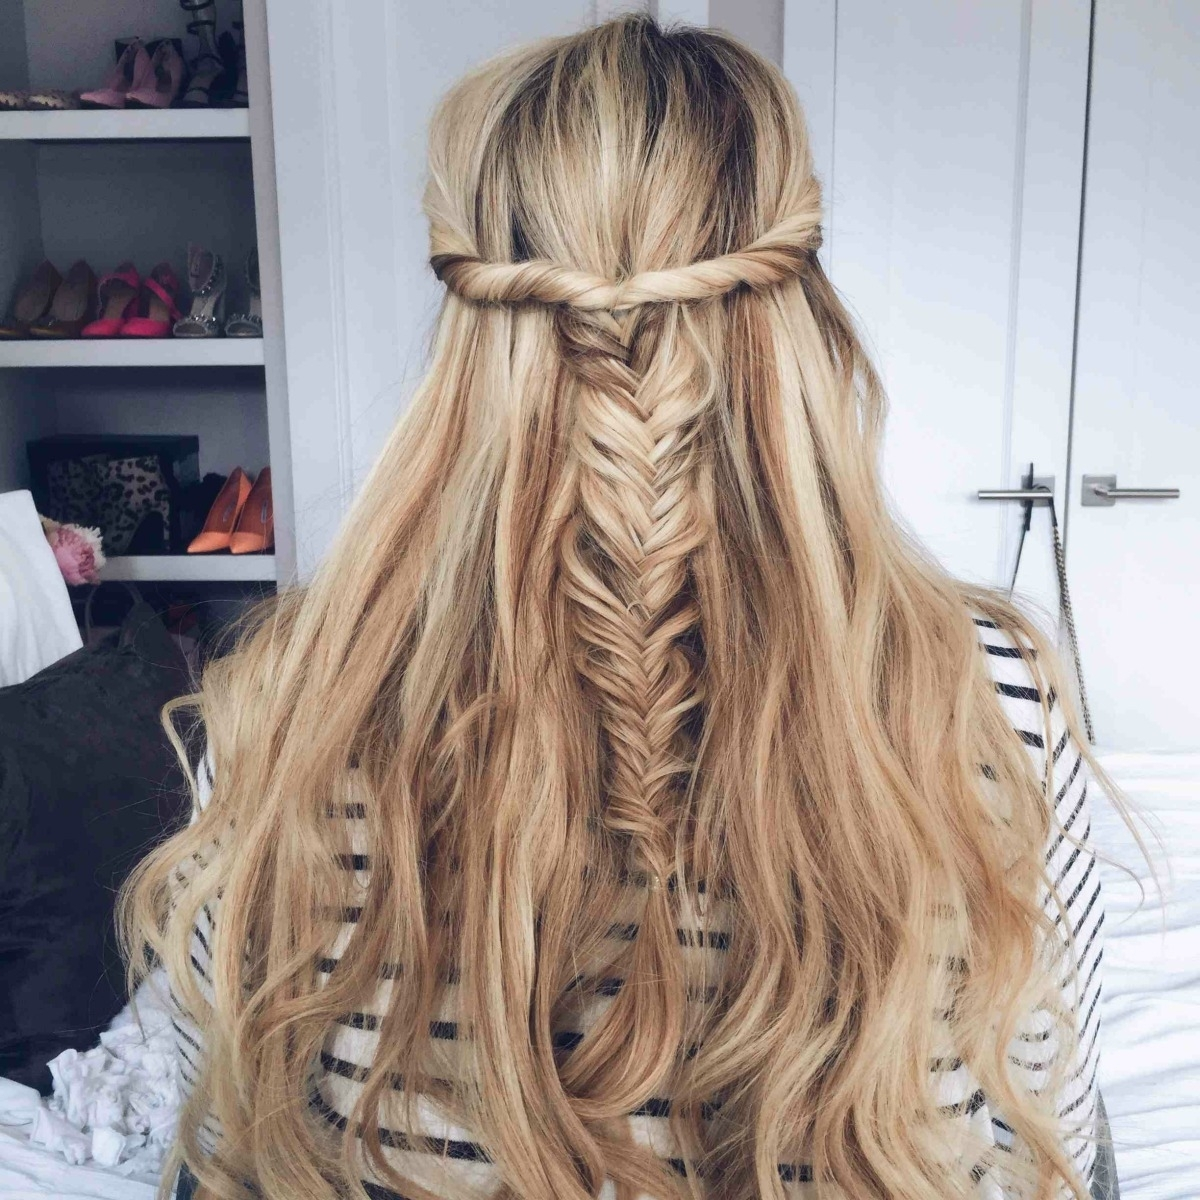 15 Casual & Simple Hairstyles That Are Half Up, Half Down Within Most Up To Date Braided Along The Way Hairstyles (View 2 of 20)